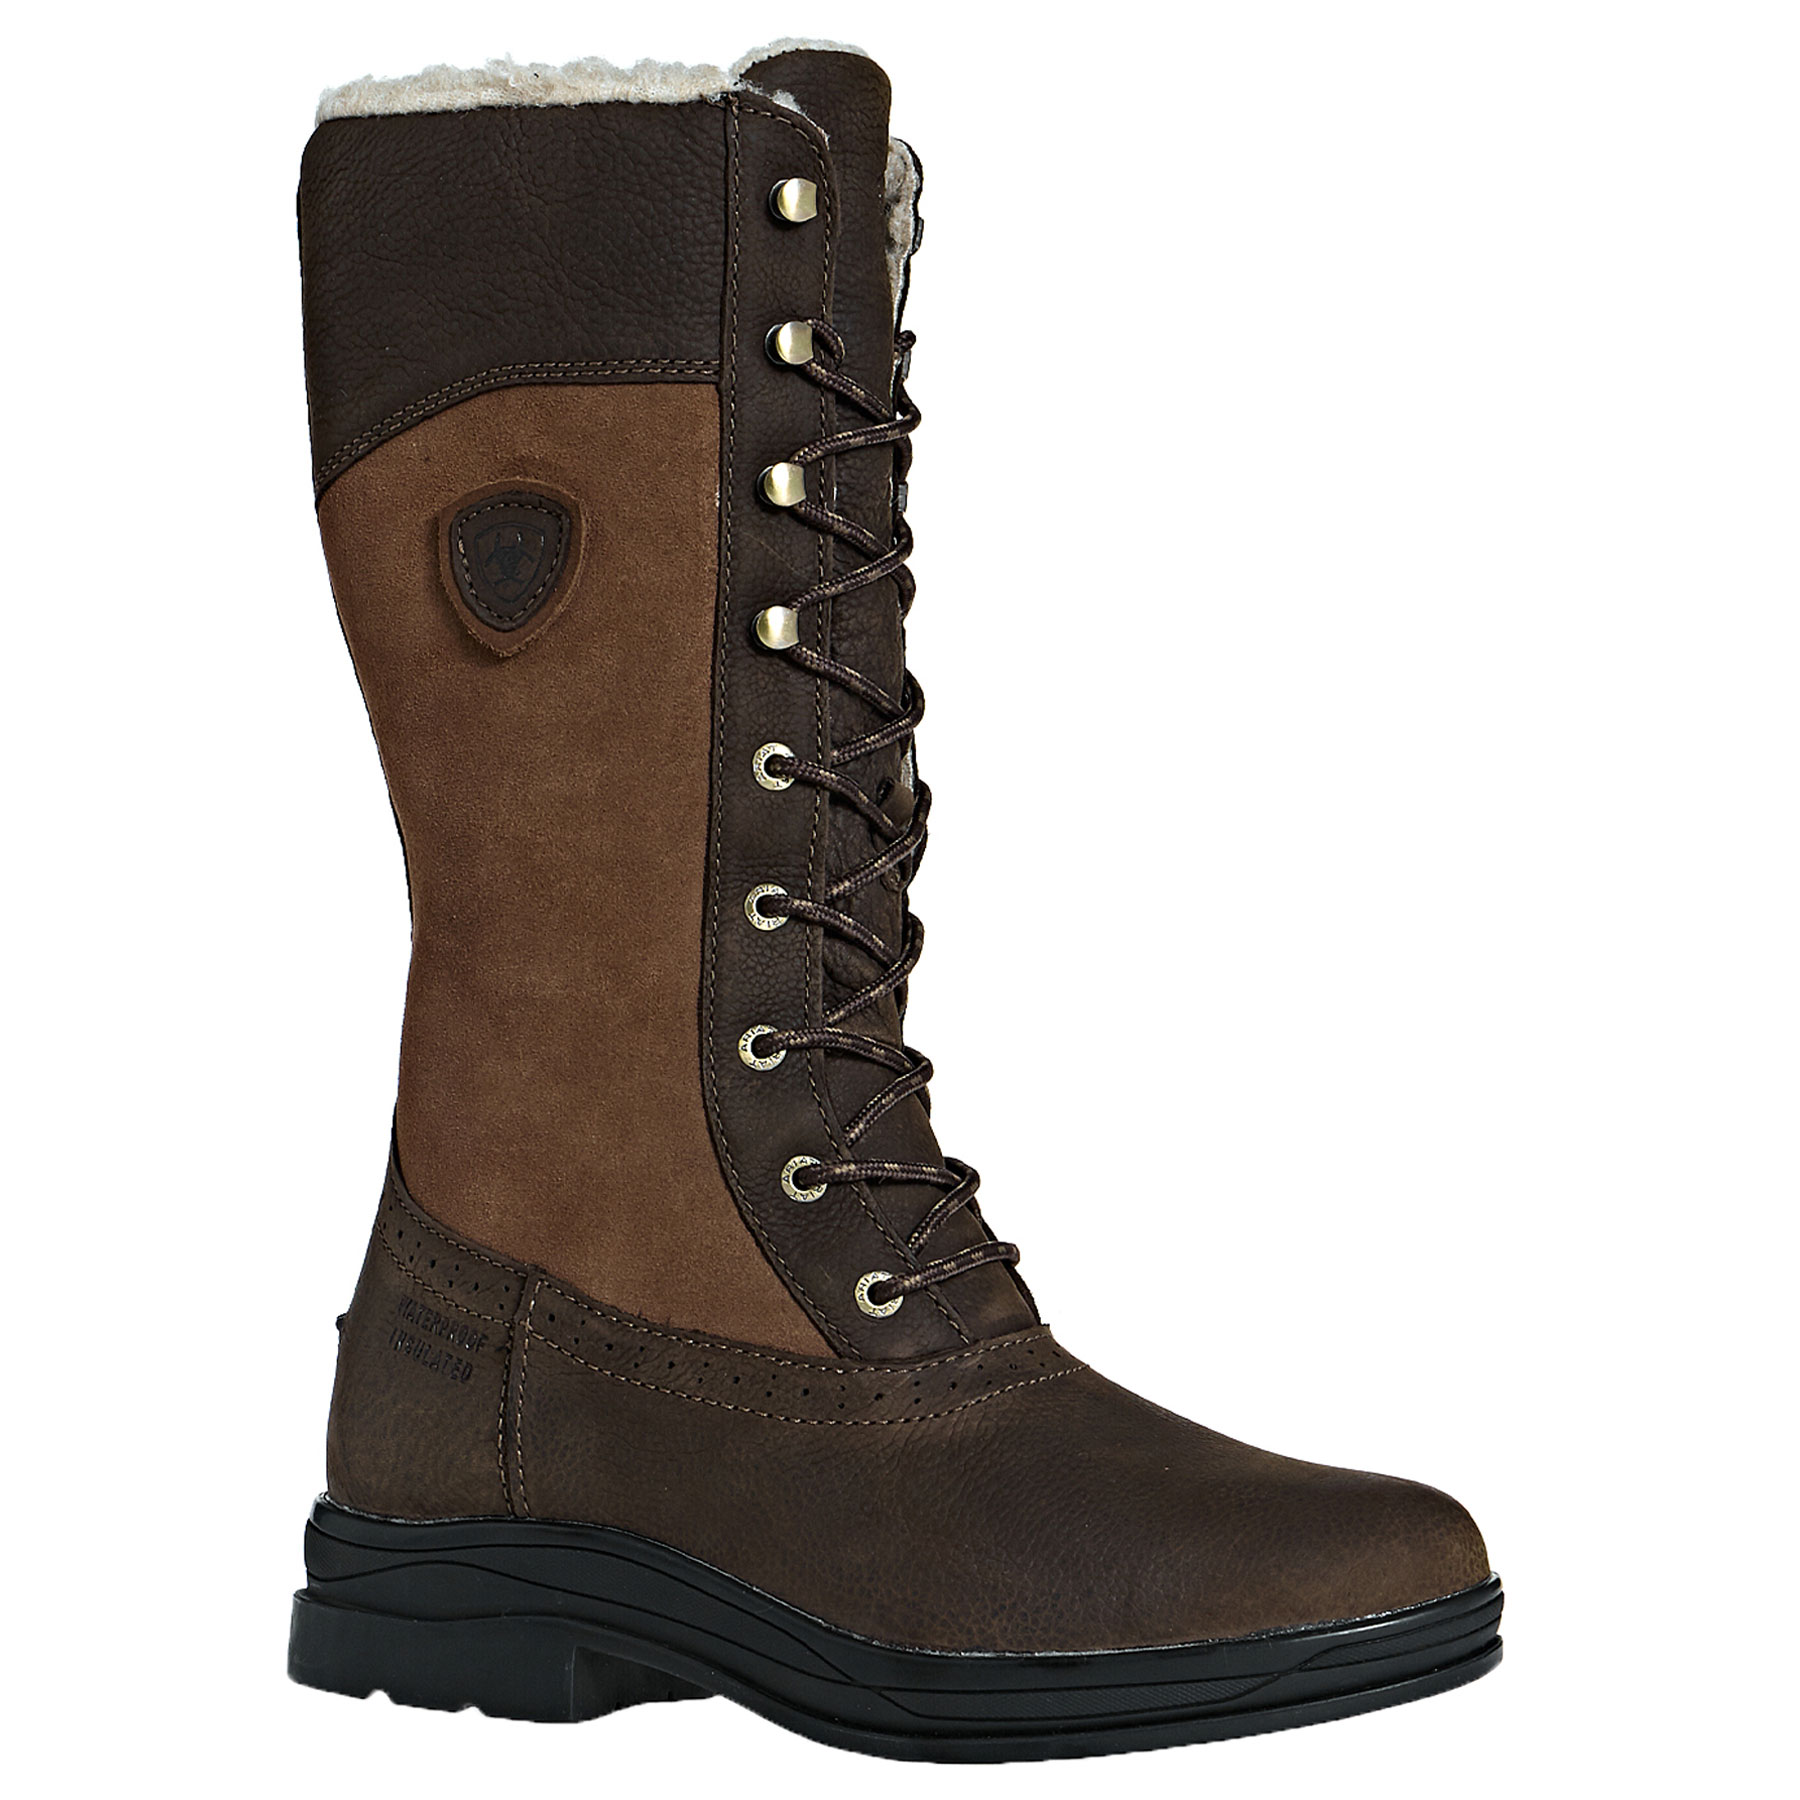 Ariat Wythburn H2O Insulated Country